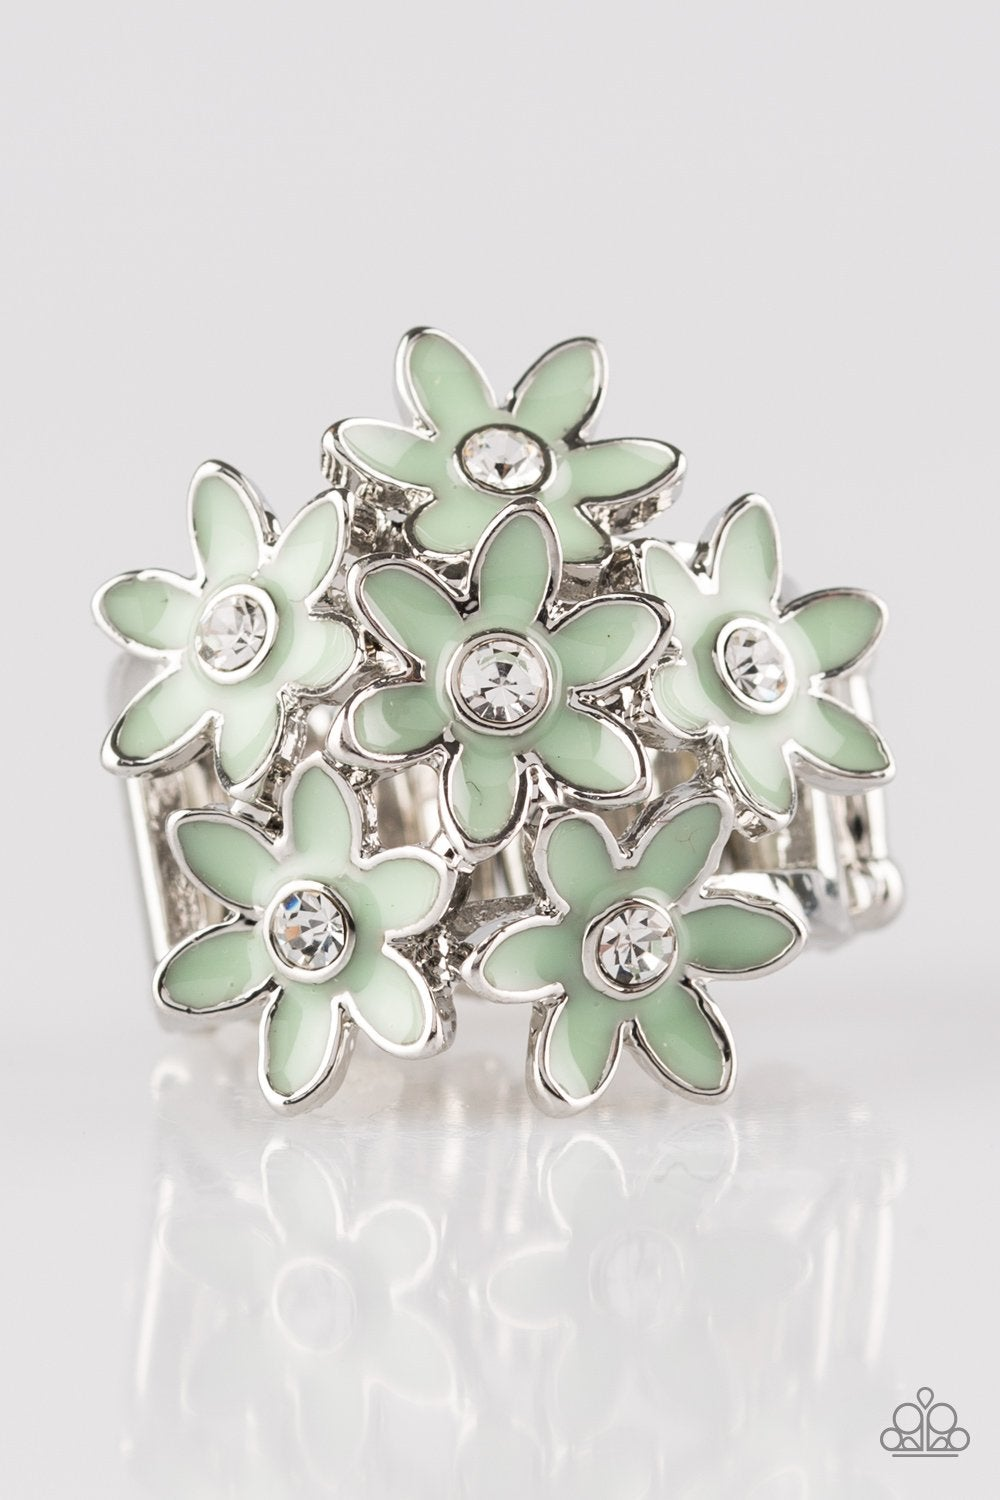 Painted in refreshing green finishes, dainty silver flowers bloom atop the finger. Glassy white rhinestones are sprinkled across the floral bouquet, adding a refined finish to the seasonal palette. Features a stretchy band for a flexible fit.